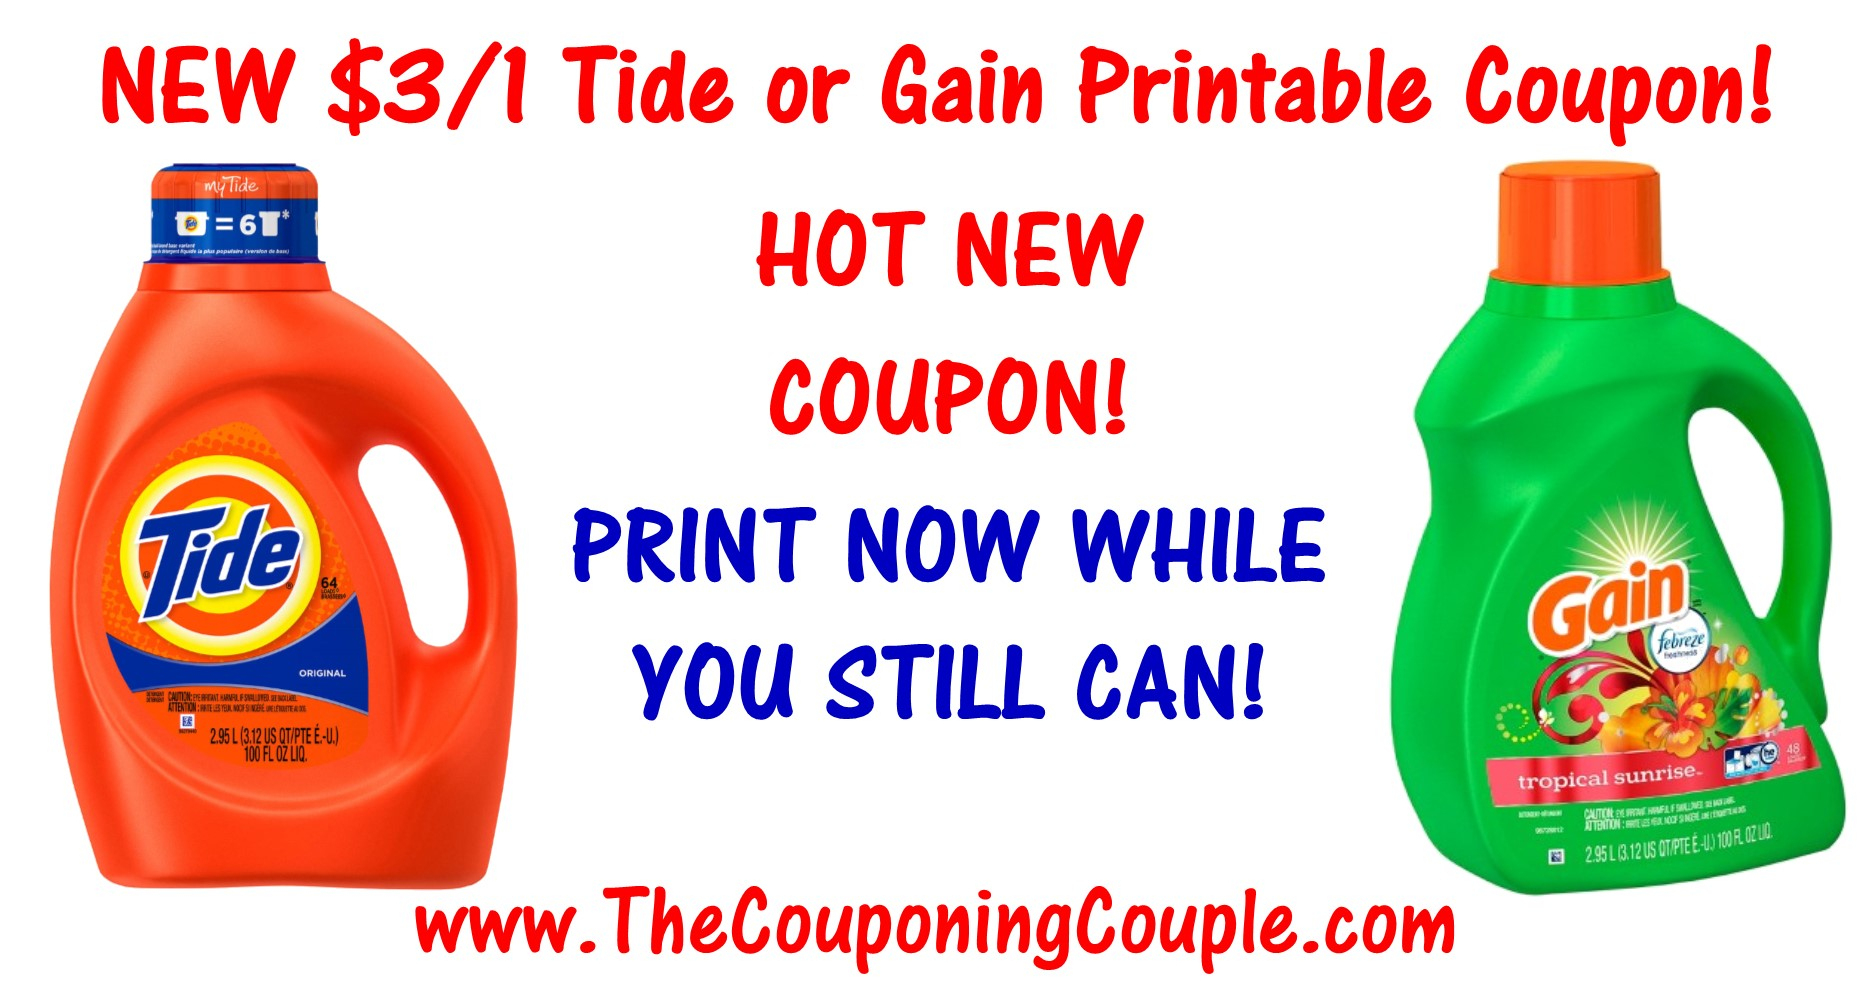 Hot New $3.00 Tide Printable Coupon Or Gain Printable Coupon ~ Print - Tide Coupons Free Printable